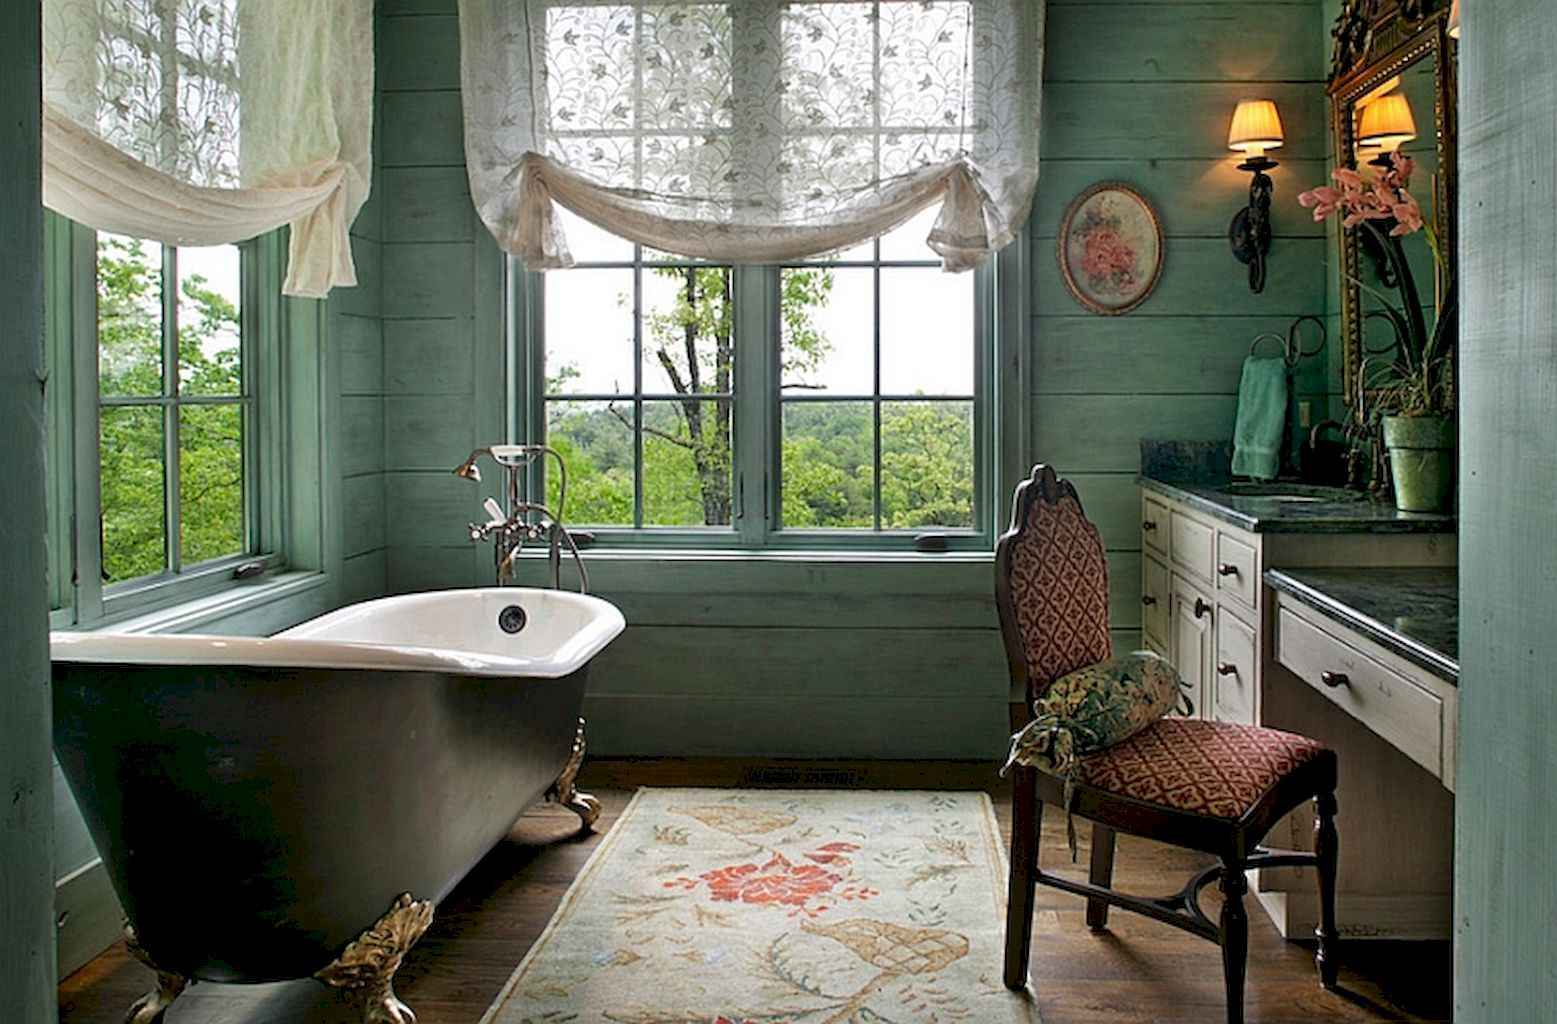 55 cool and relax bathroom design ideas (30)